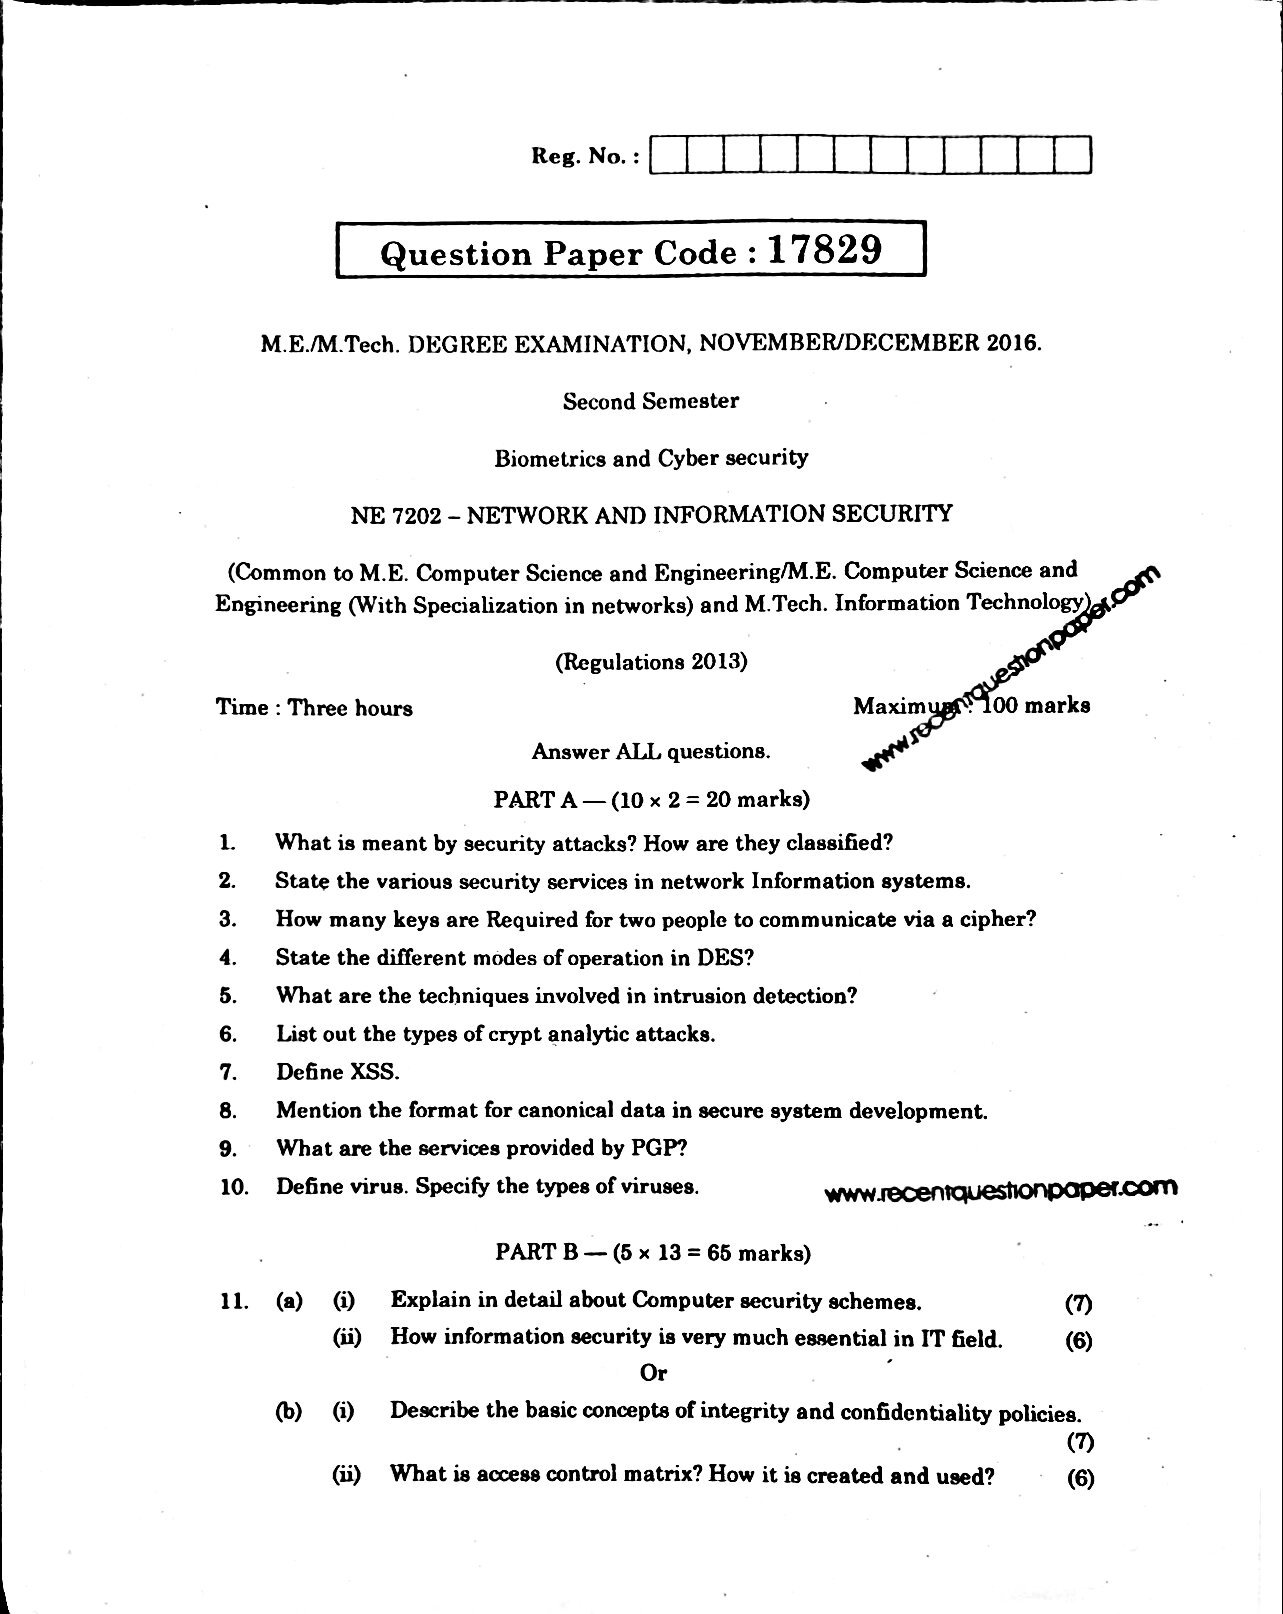 NE7202 NETWORK AND INFORMATION SECURITY 1 - Recent Question Paper